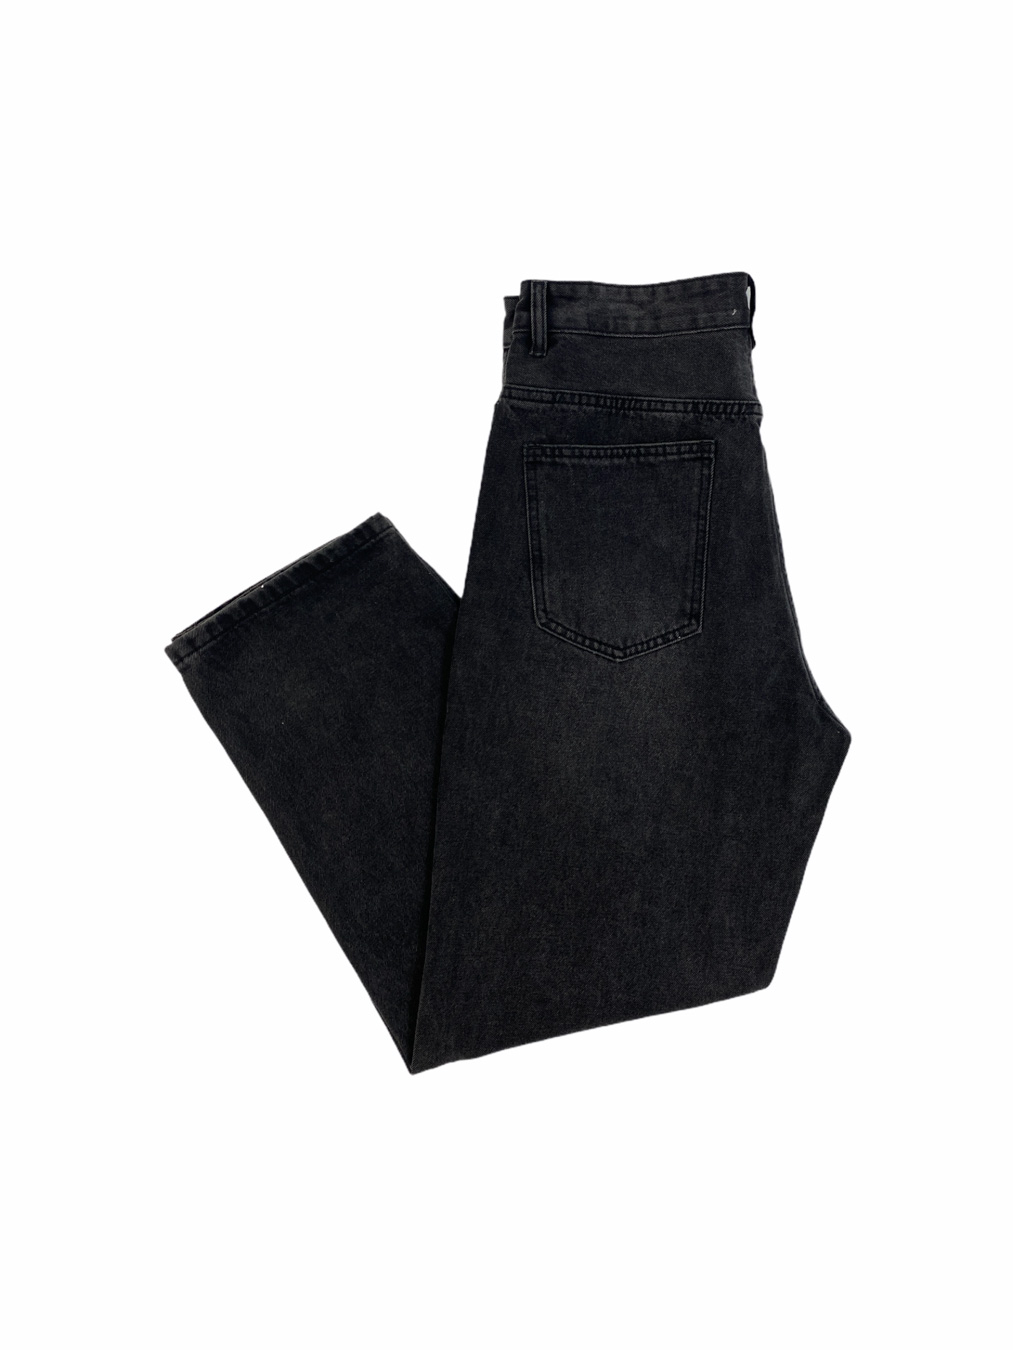 TRF Jeans (Gray)-S